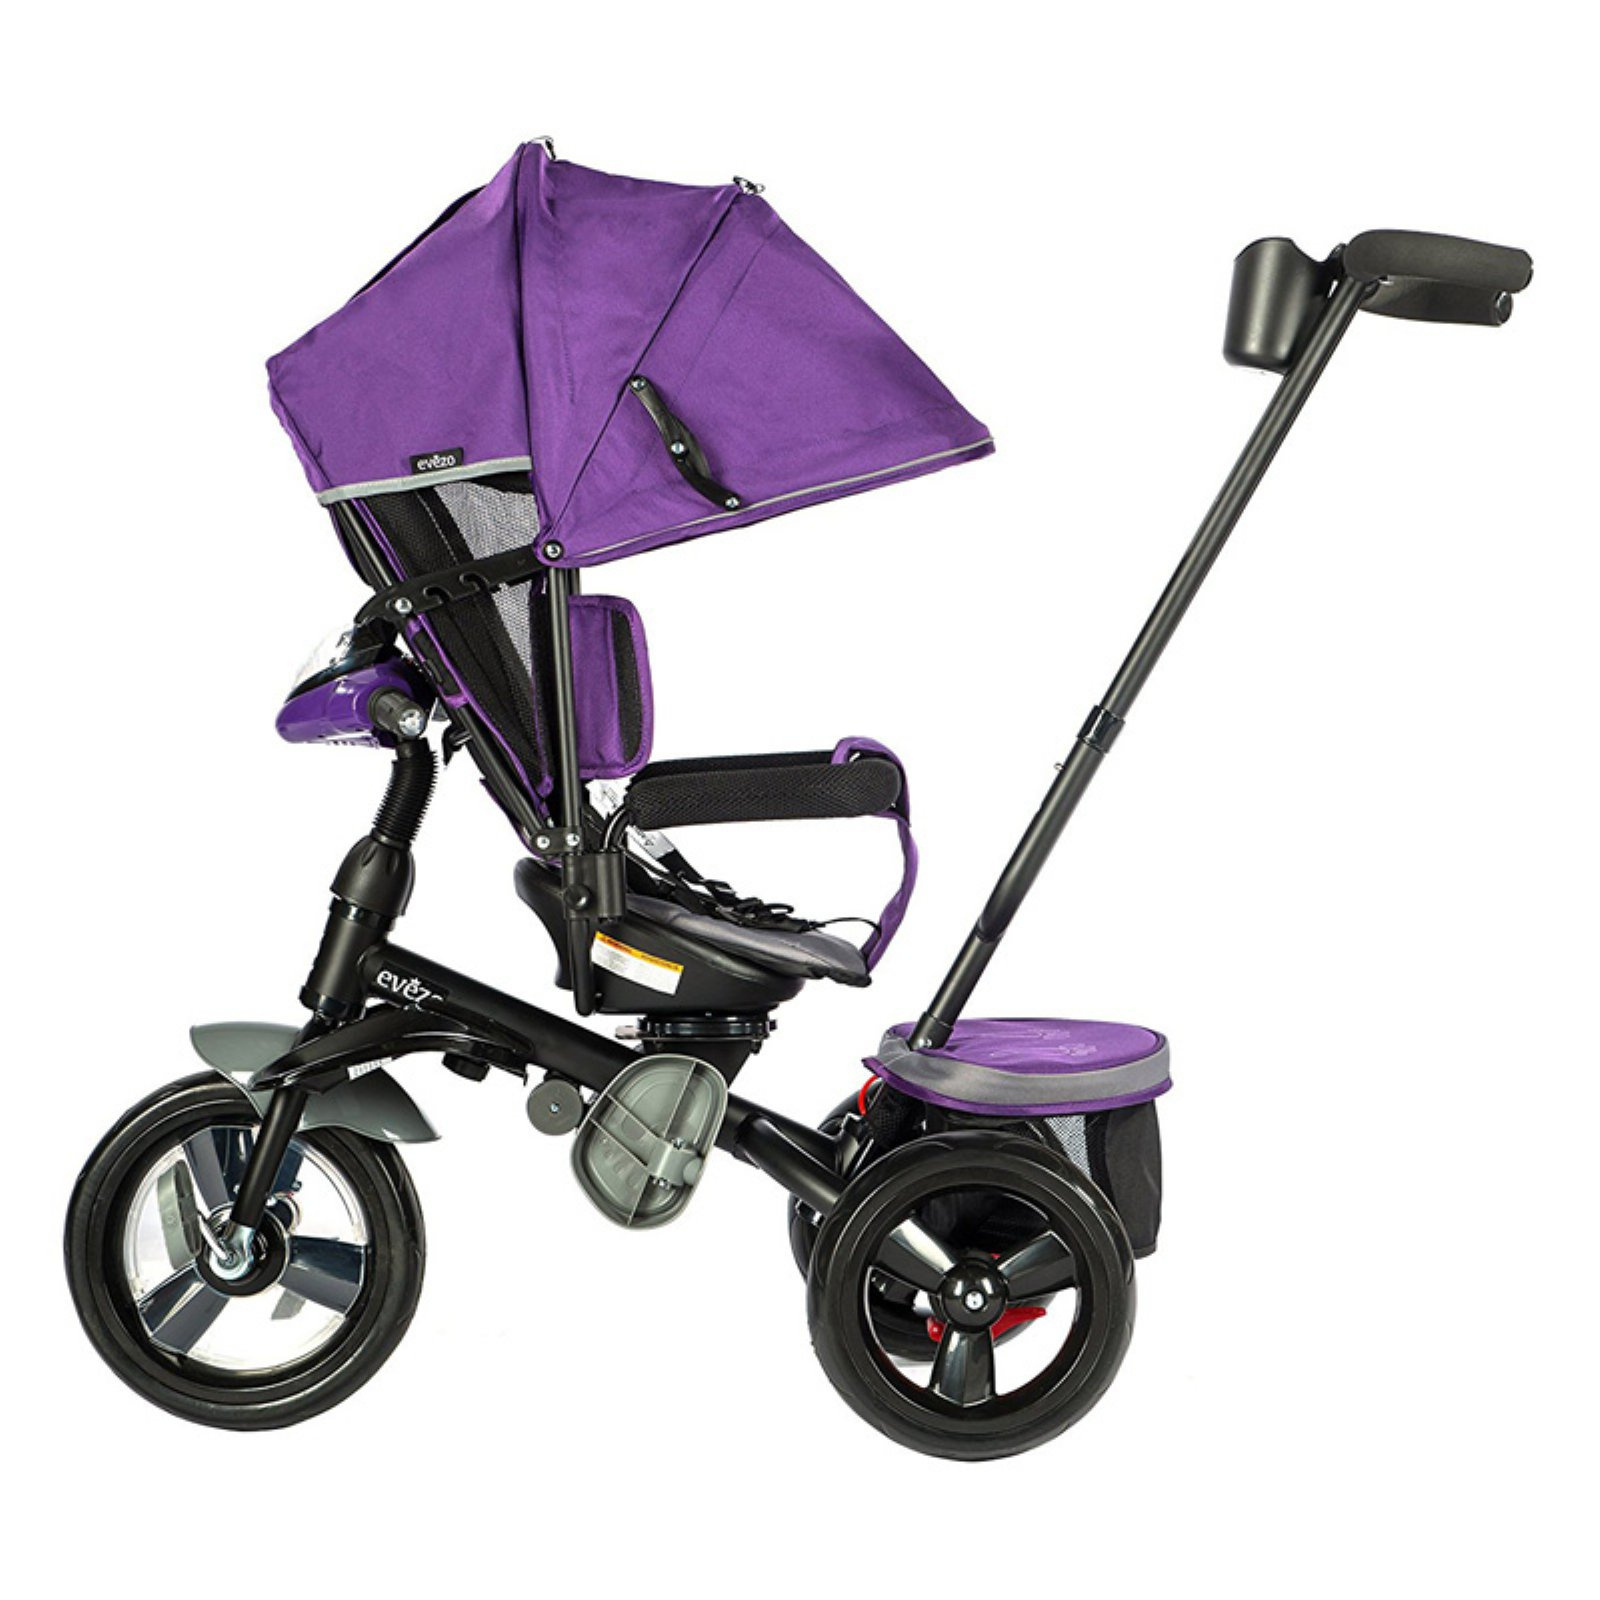 8f9416eafff Evezo 302A 4-in-1 Parent Push Tricycle for Kids, Reclining Trike ...